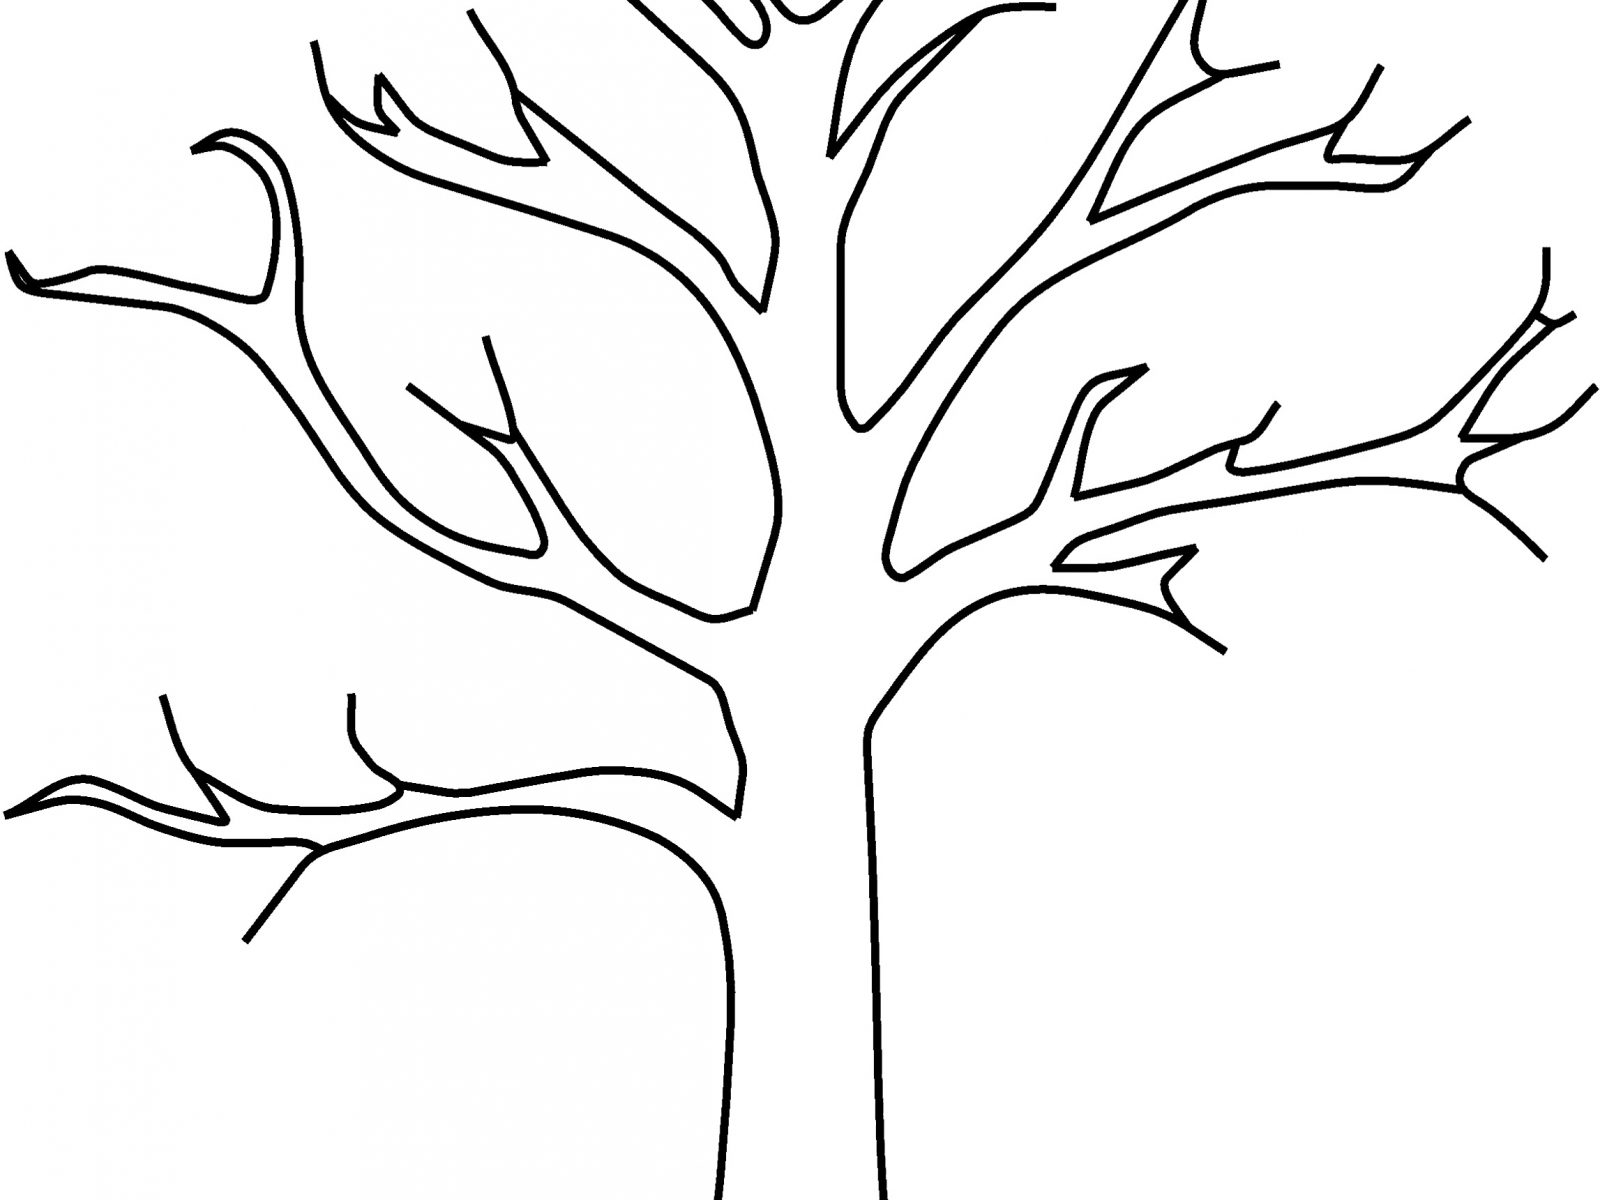 1600x1200 Free Christmas Tree Coloring Pages For Download Printable Kids Big